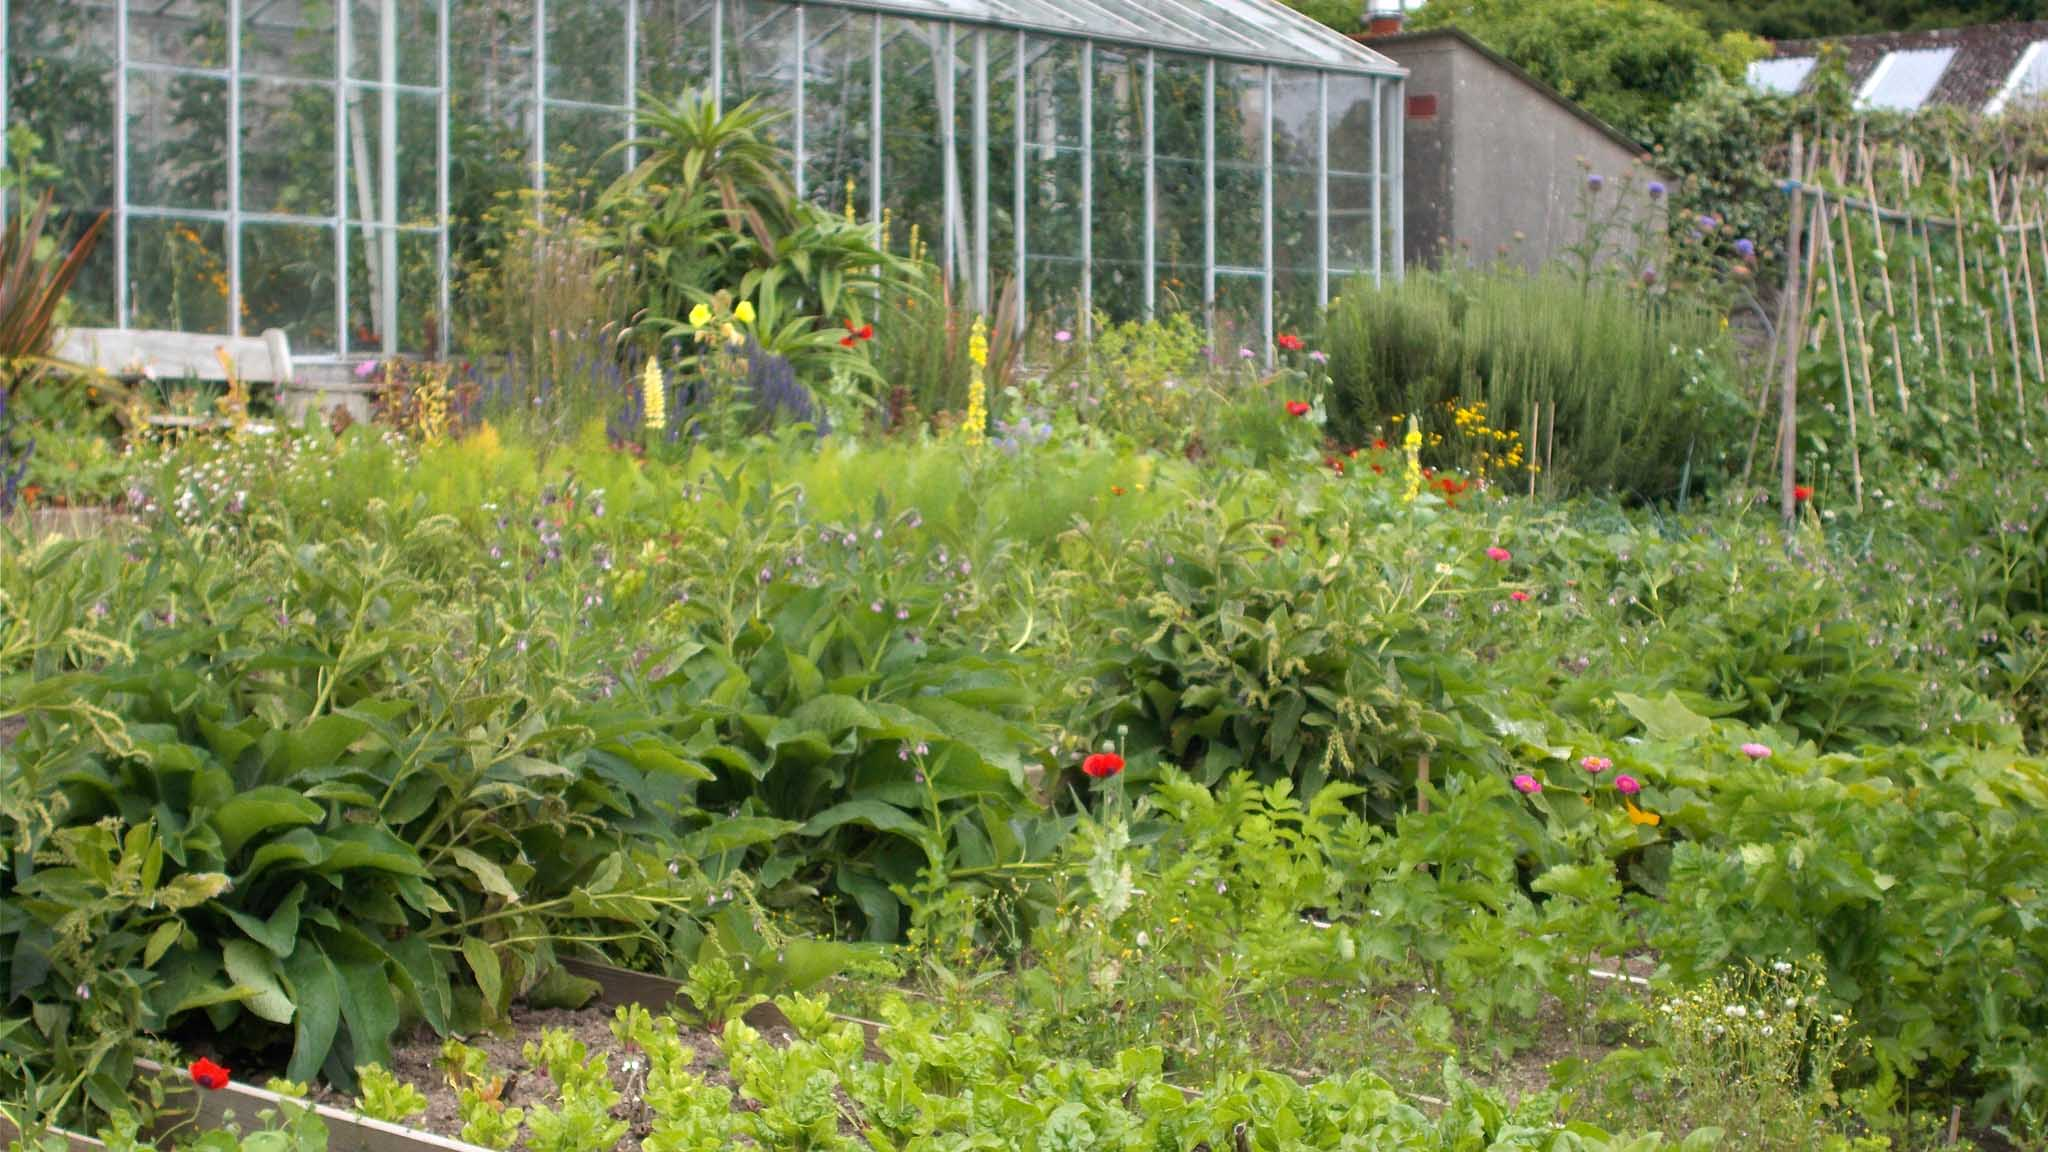 Walled Garden vegetables harvested in May